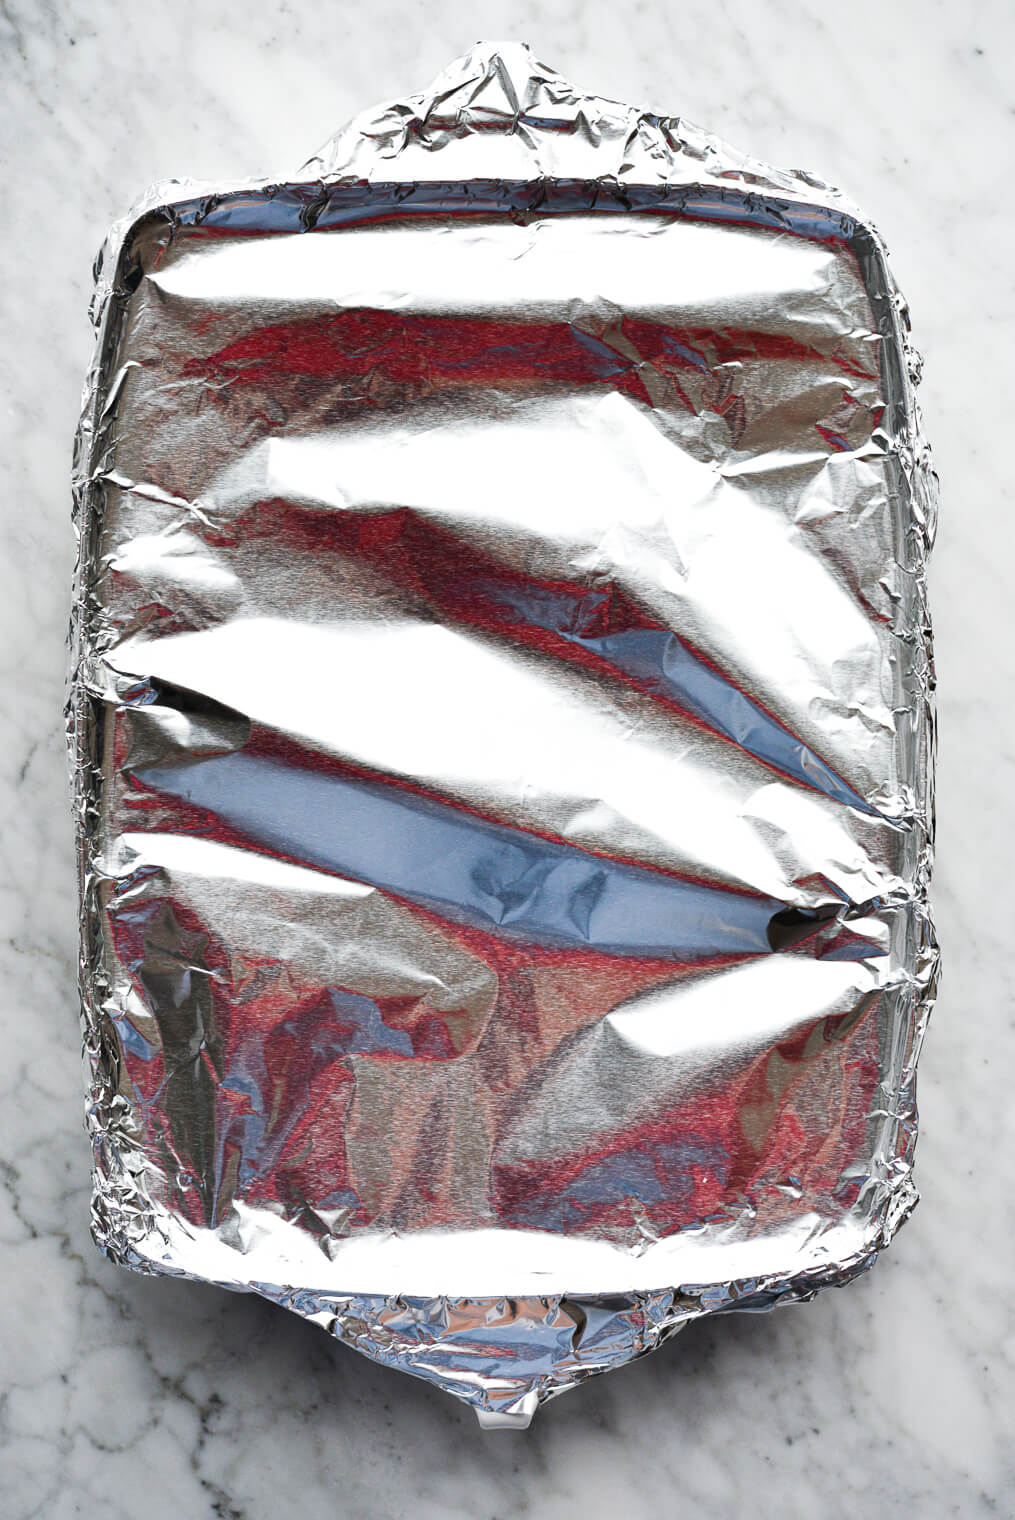 a baking dish covered tightly with foil sitting on a marble surface